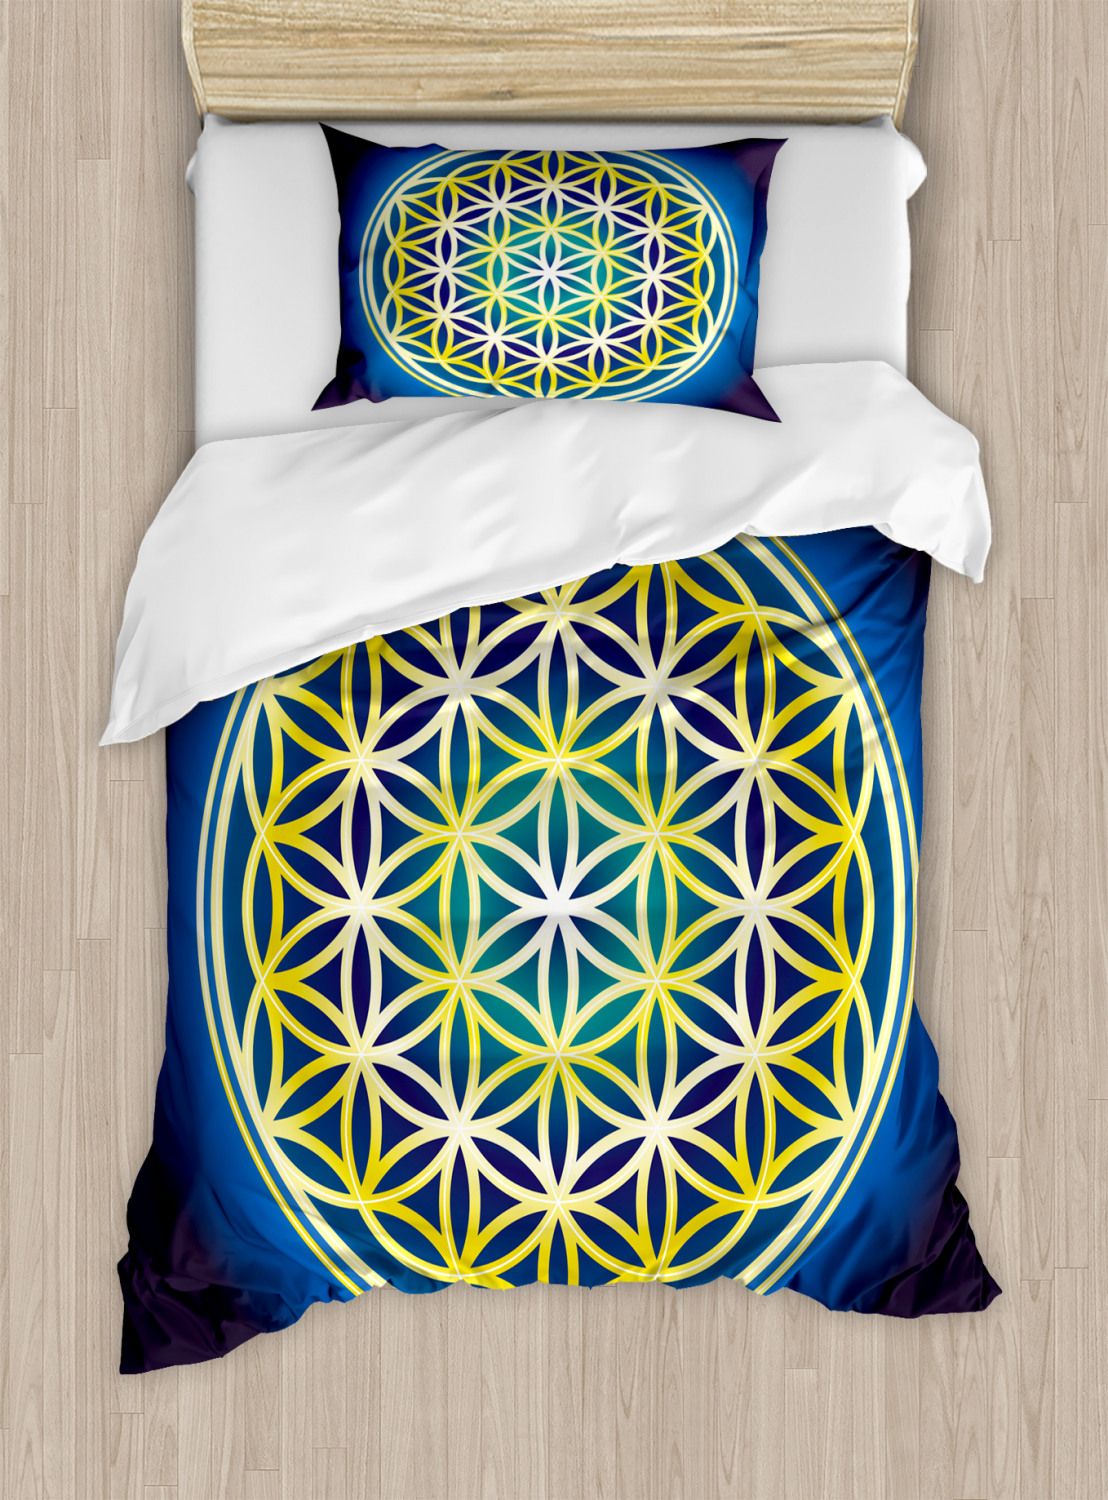 Flower-of-Life-Duvet-Cover-Set-Twin-Queen-King-Sizes-with-Pillow-Shams thumbnail 34